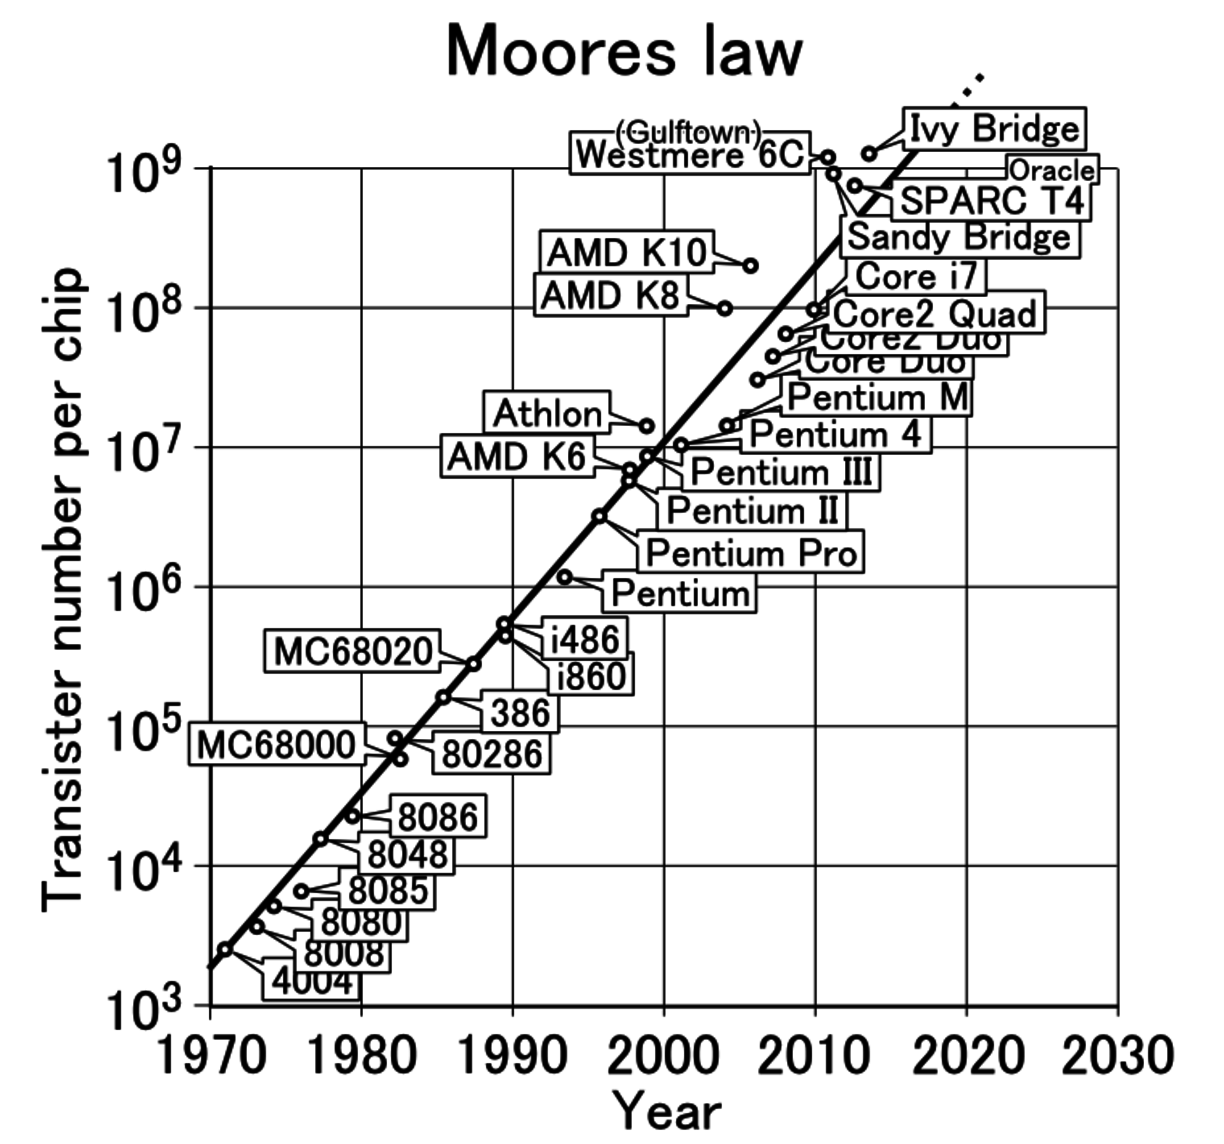 What Happened To The Chess Community After Computers Became Stronger Four Move Checkmate Diagram Moores Law Has Held Stead Up And Including Now